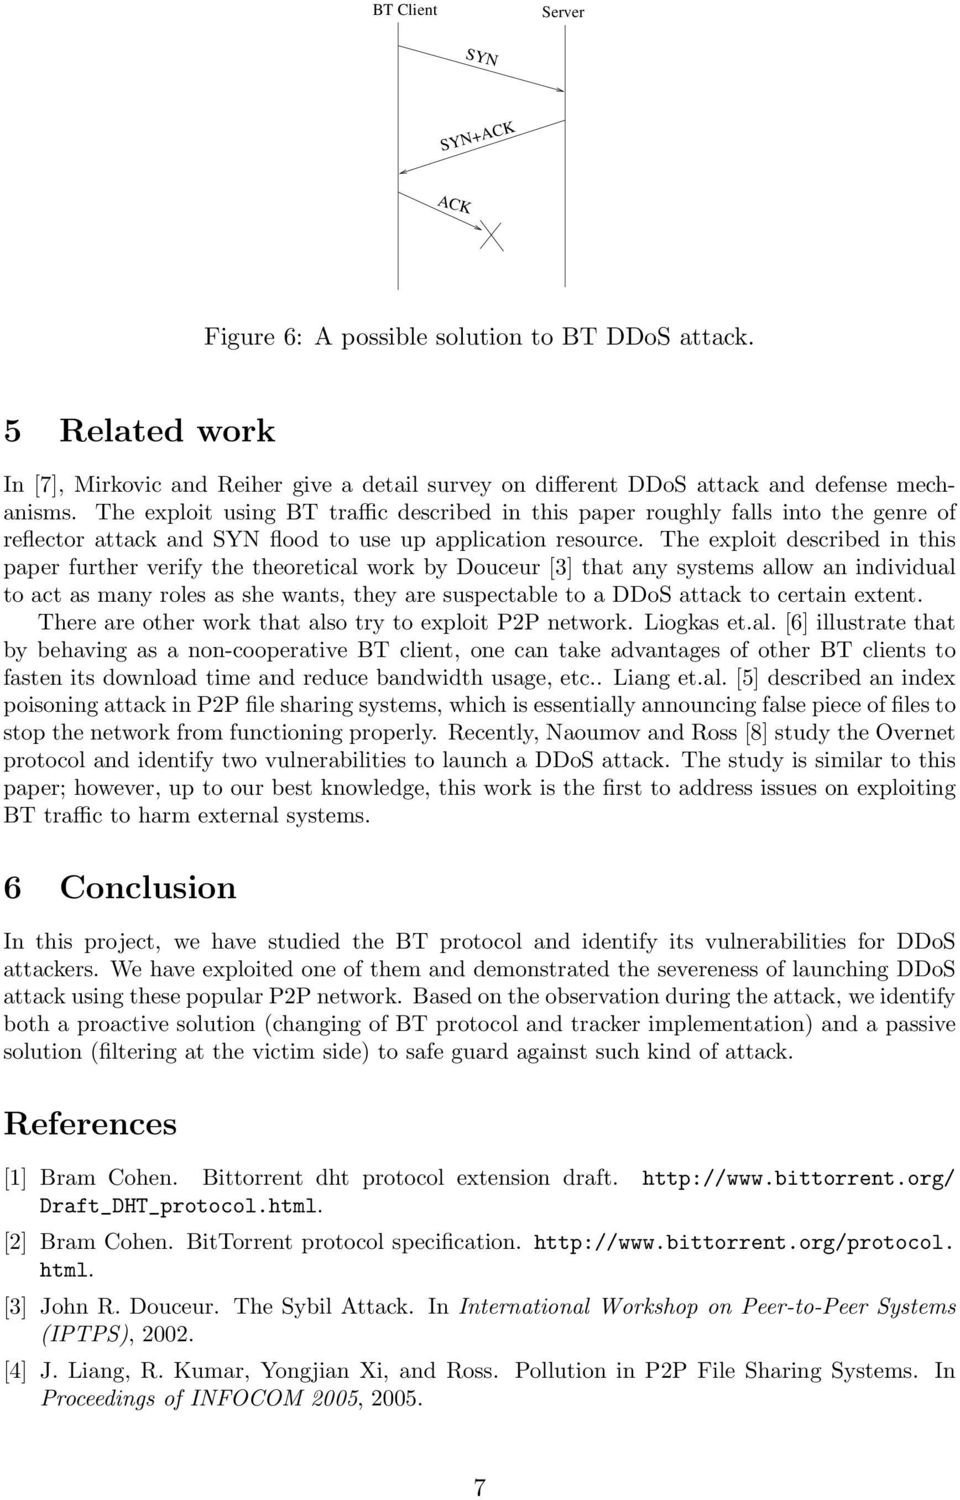 The exploit described in this paper further verify the theoretical work by Douceur [3] that any systems allow an individual to act as many roles as she wants, they are suspectable to a DDoS attack to